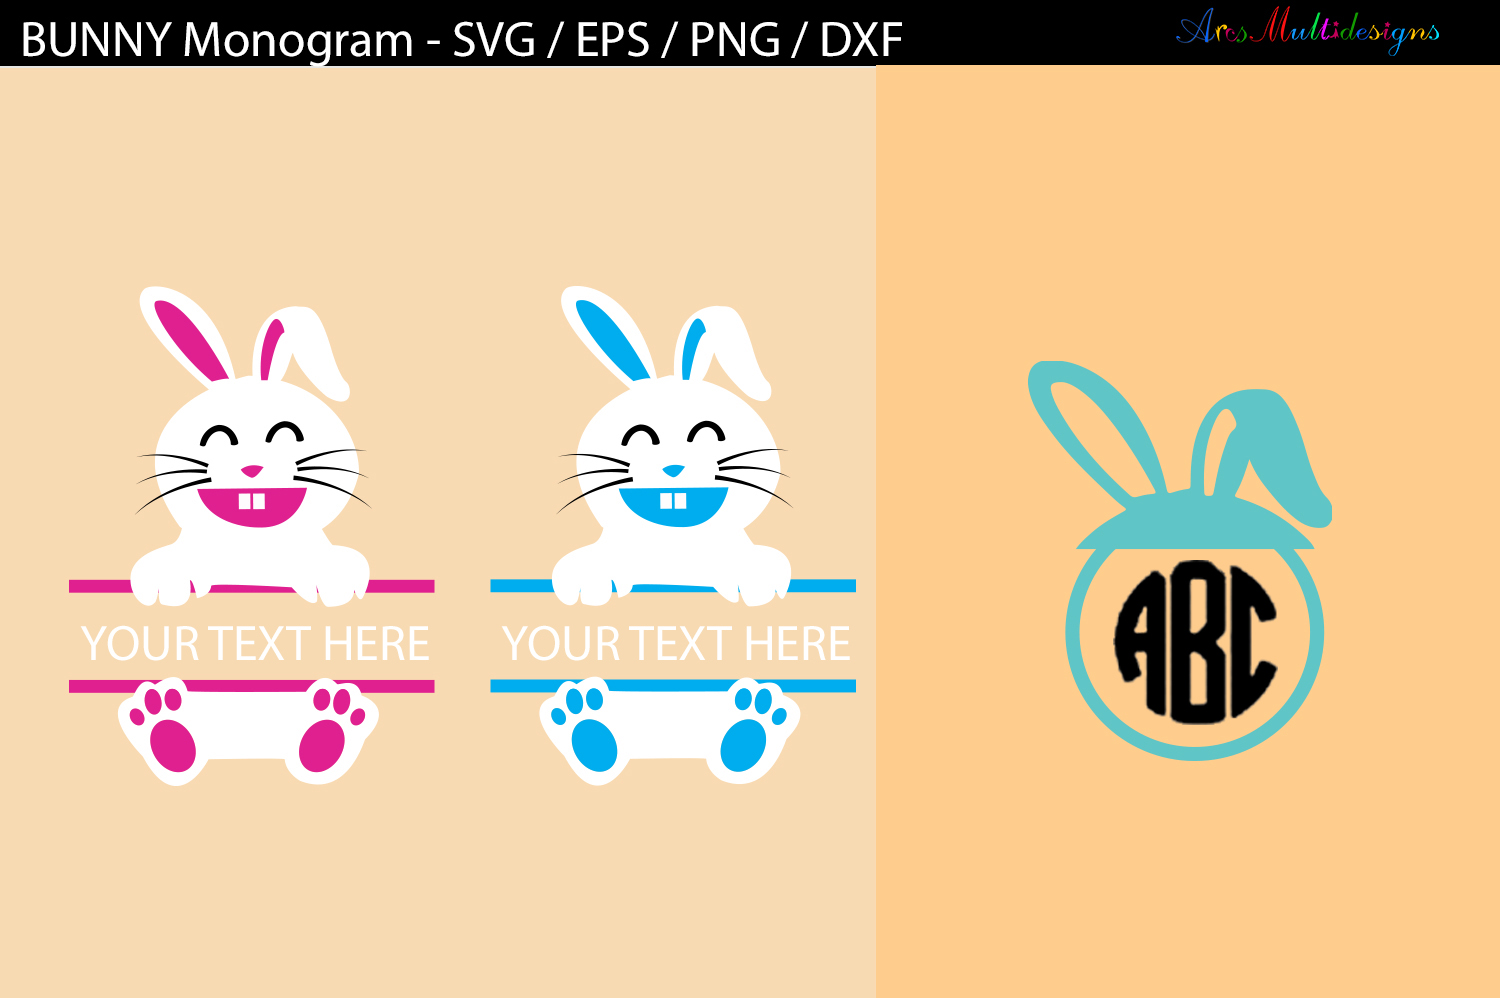 Download Free Easter Bunny Monogram Svg Graphic By Arcs Multidesigns for Cricut Explore, Silhouette and other cutting machines.